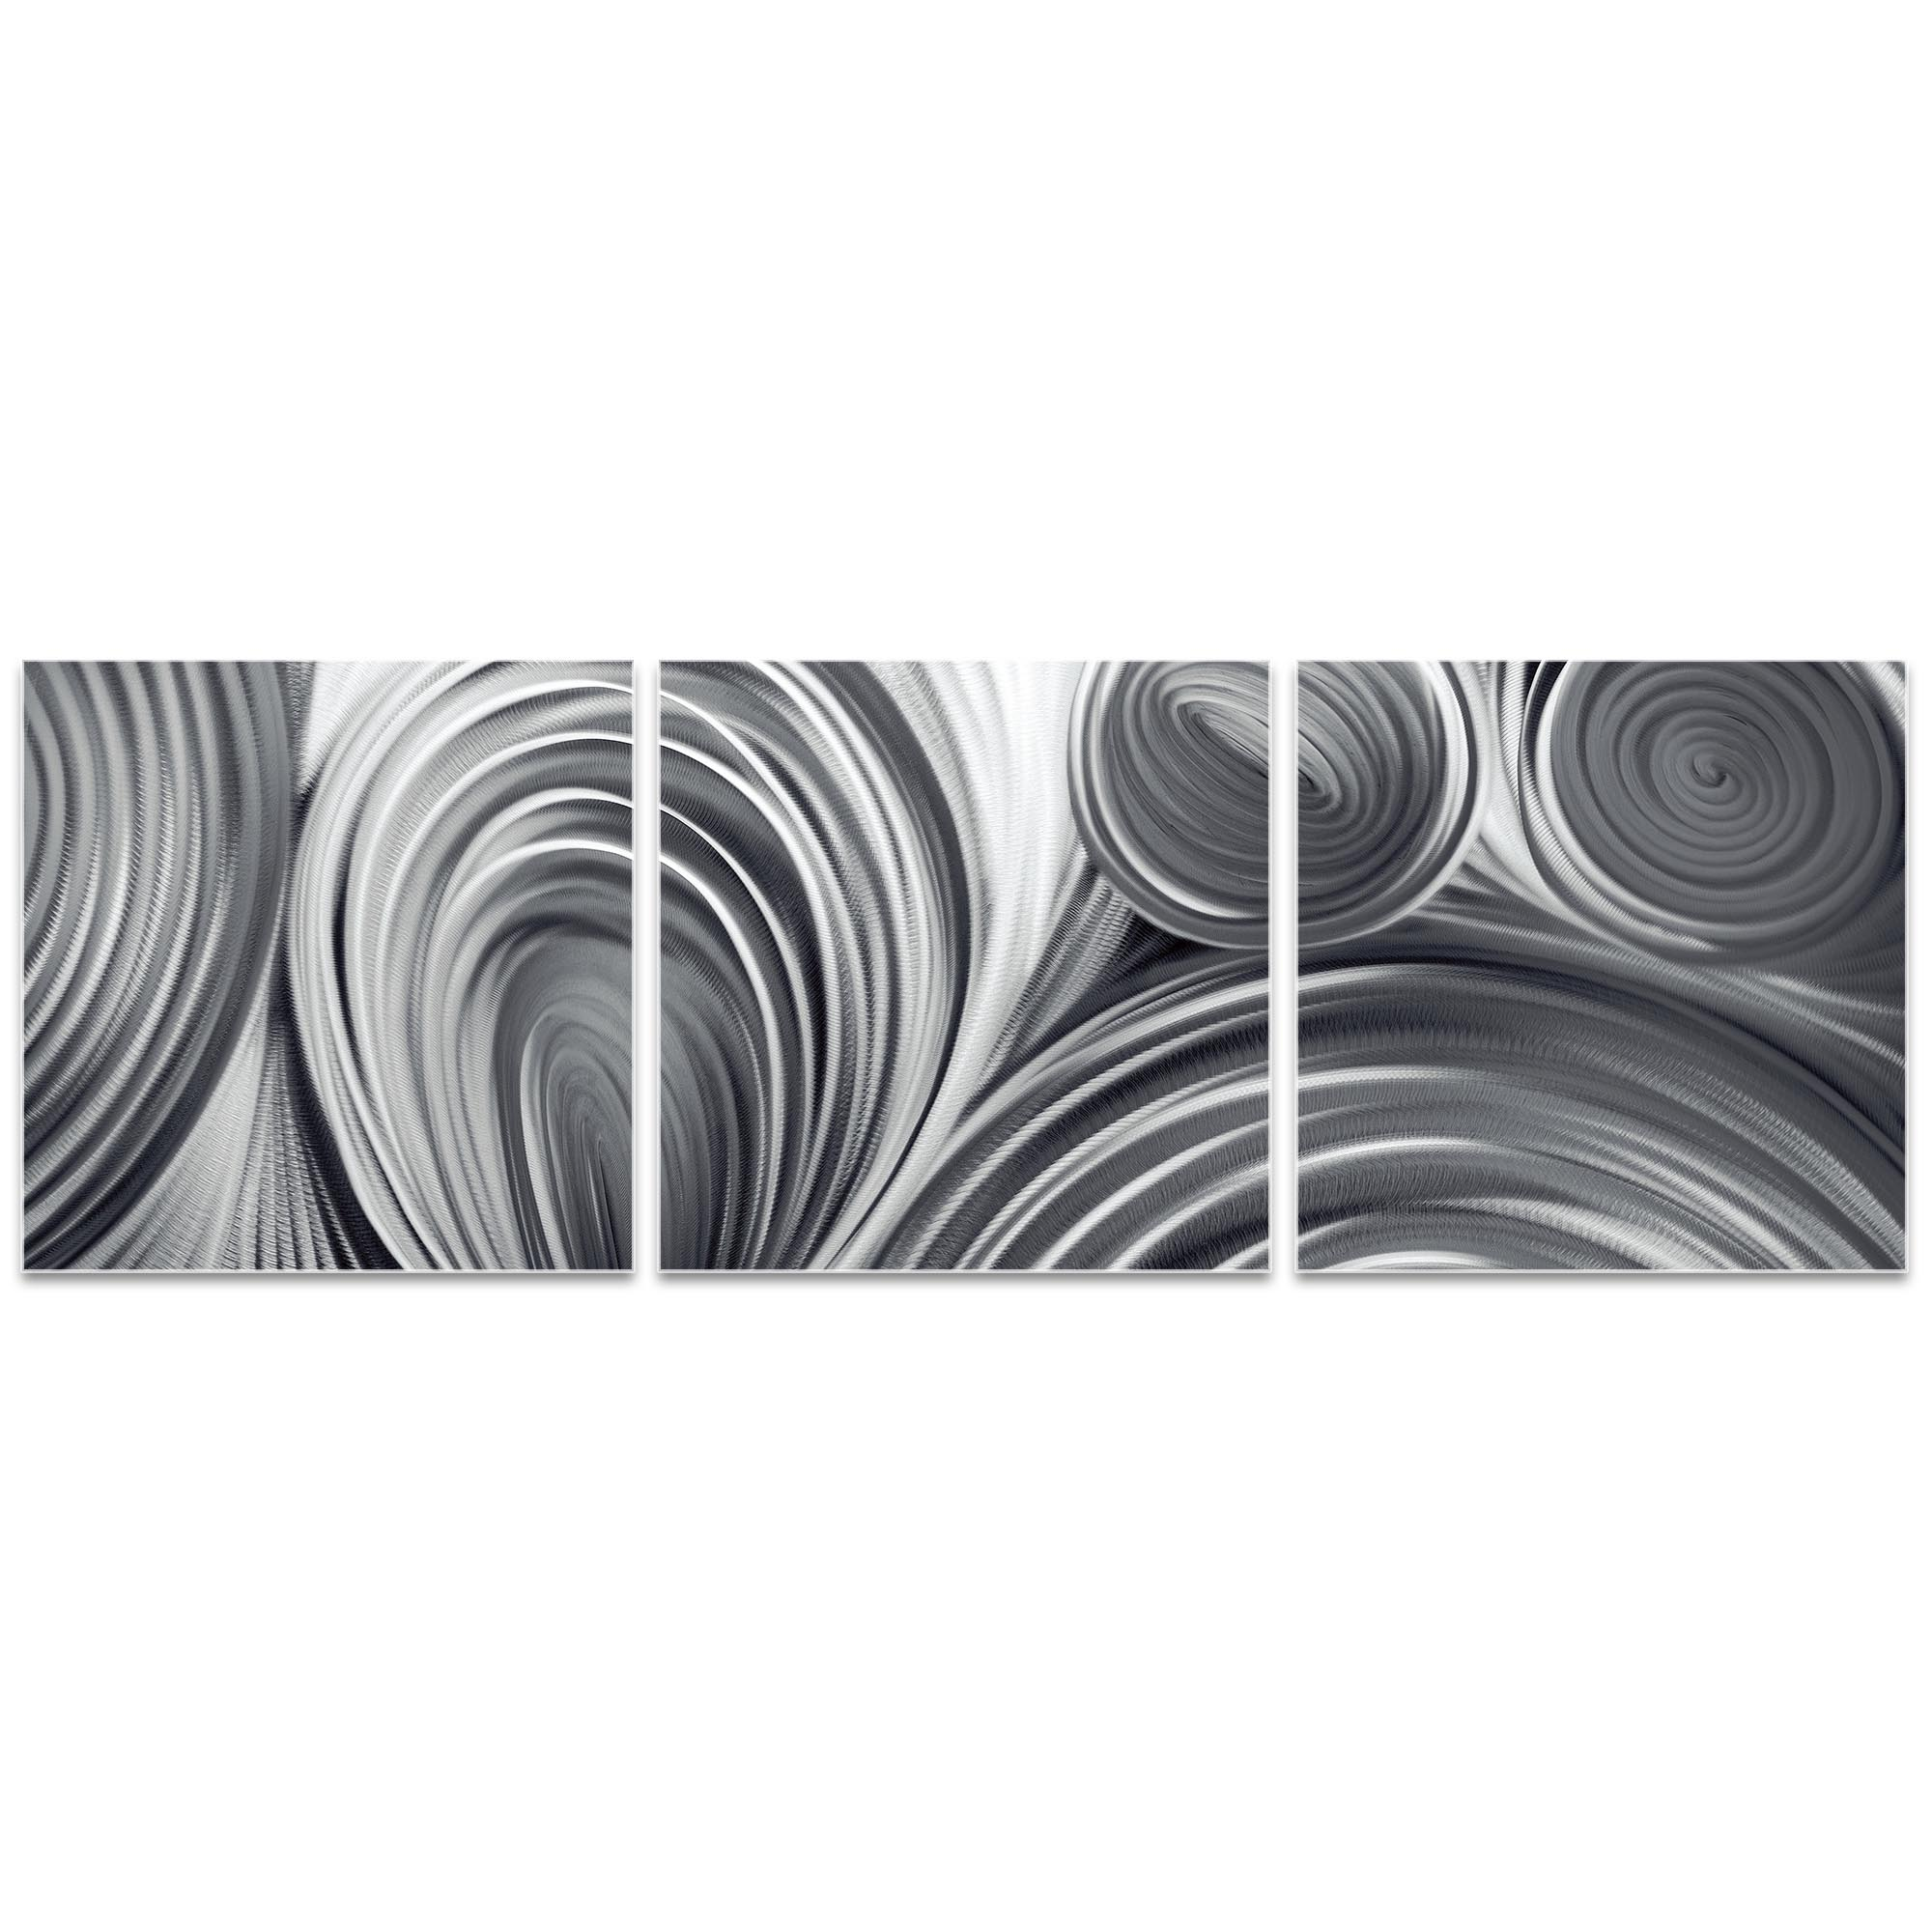 Conduction Triptych 38x12in. Metal or Acrylic Contemporary Decor - Image 2